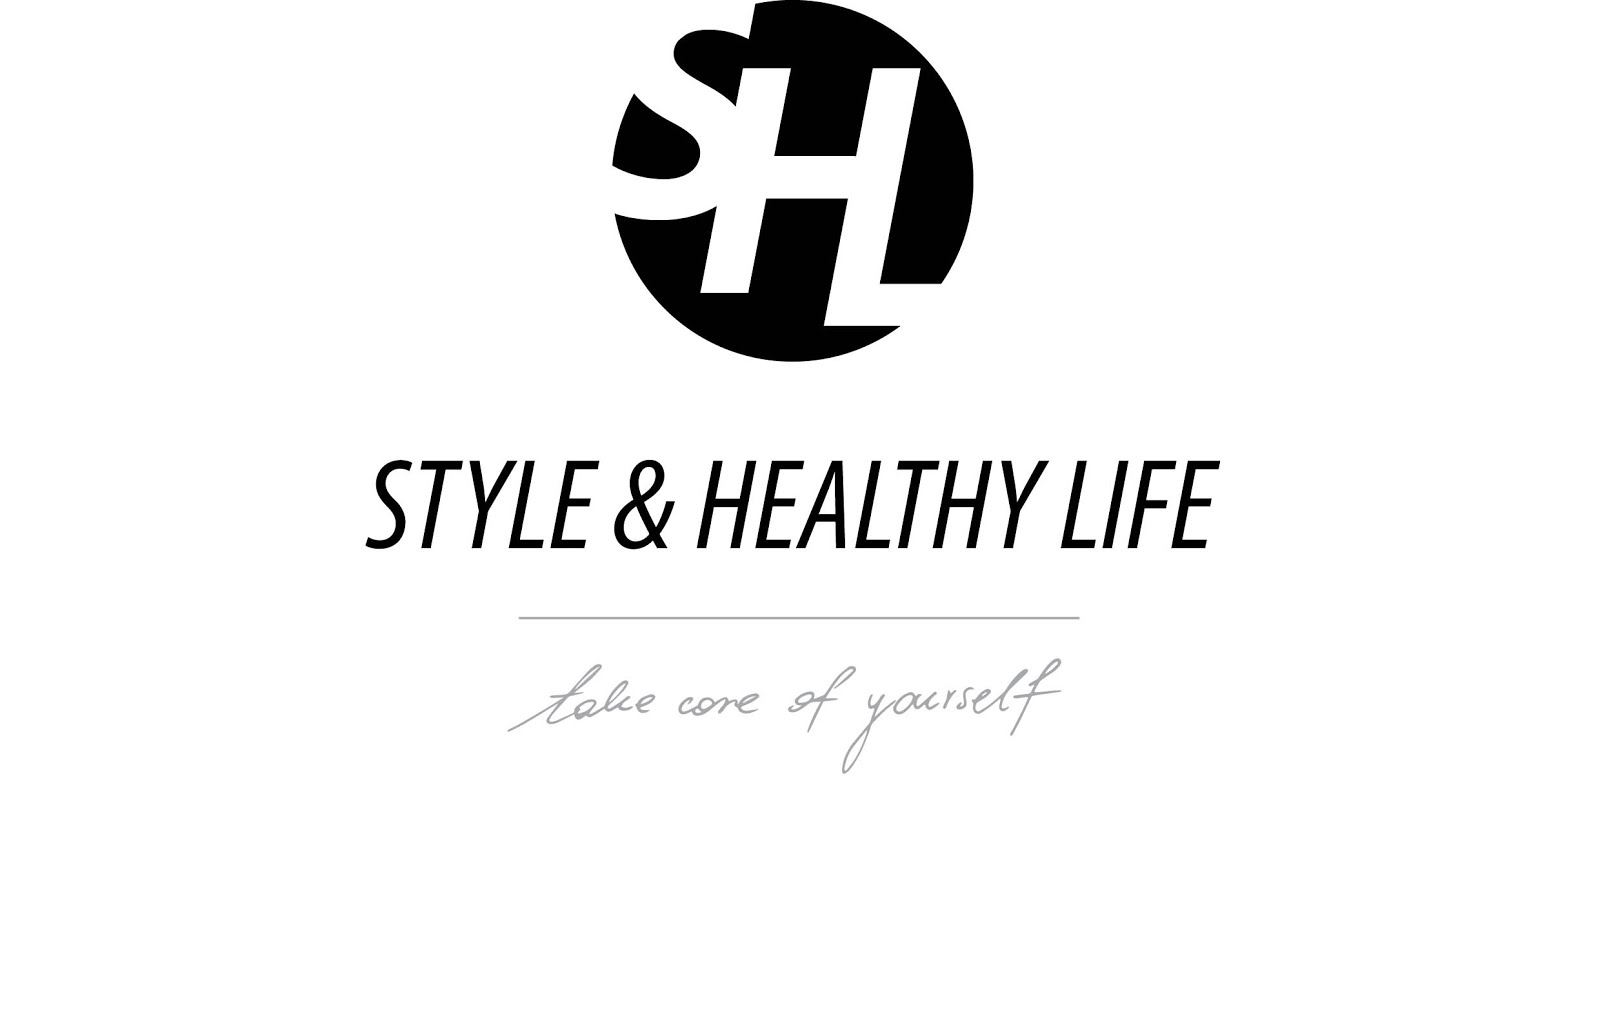 Style & Healthy Life